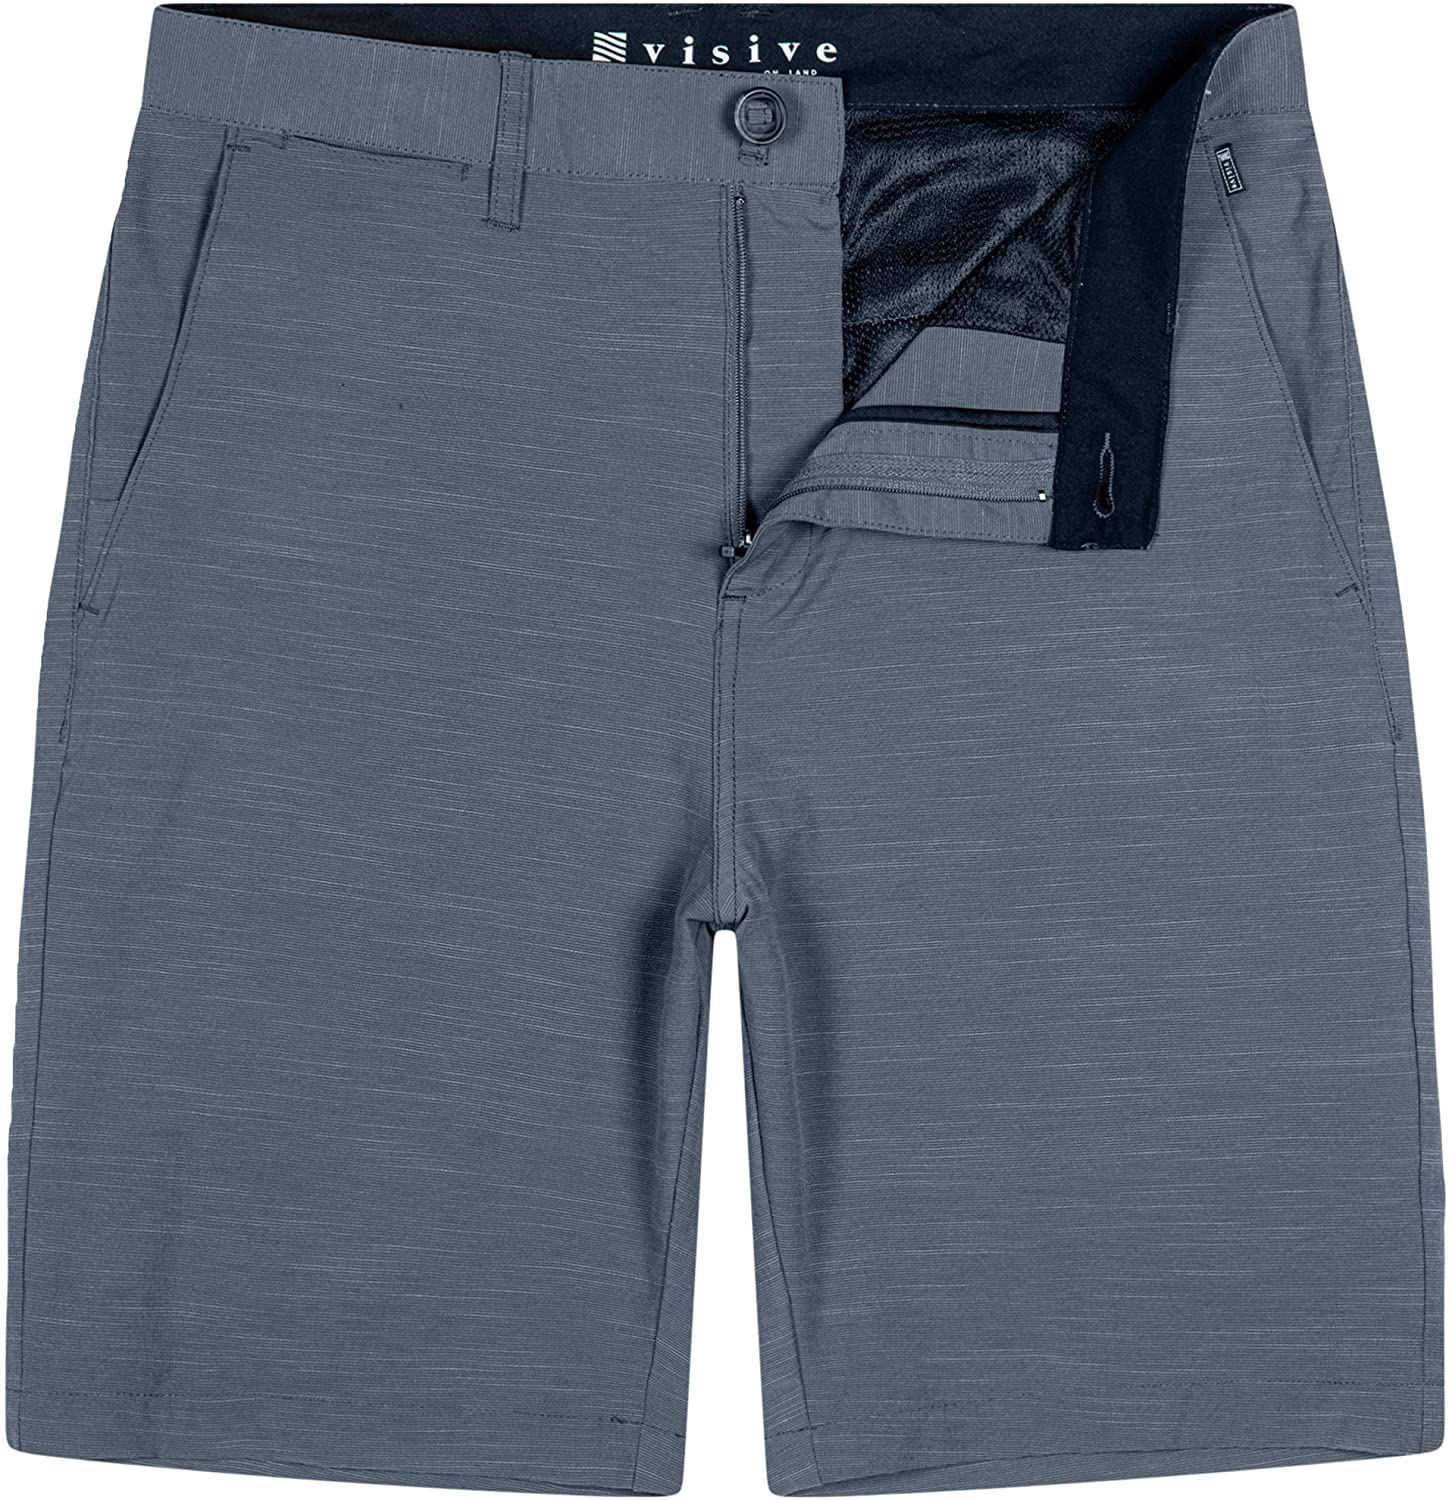 Visive OFFicial site Mens Hybrid Quick Dry Board 30-44 Walk Short Size 2021 autumn and winter new Shorts